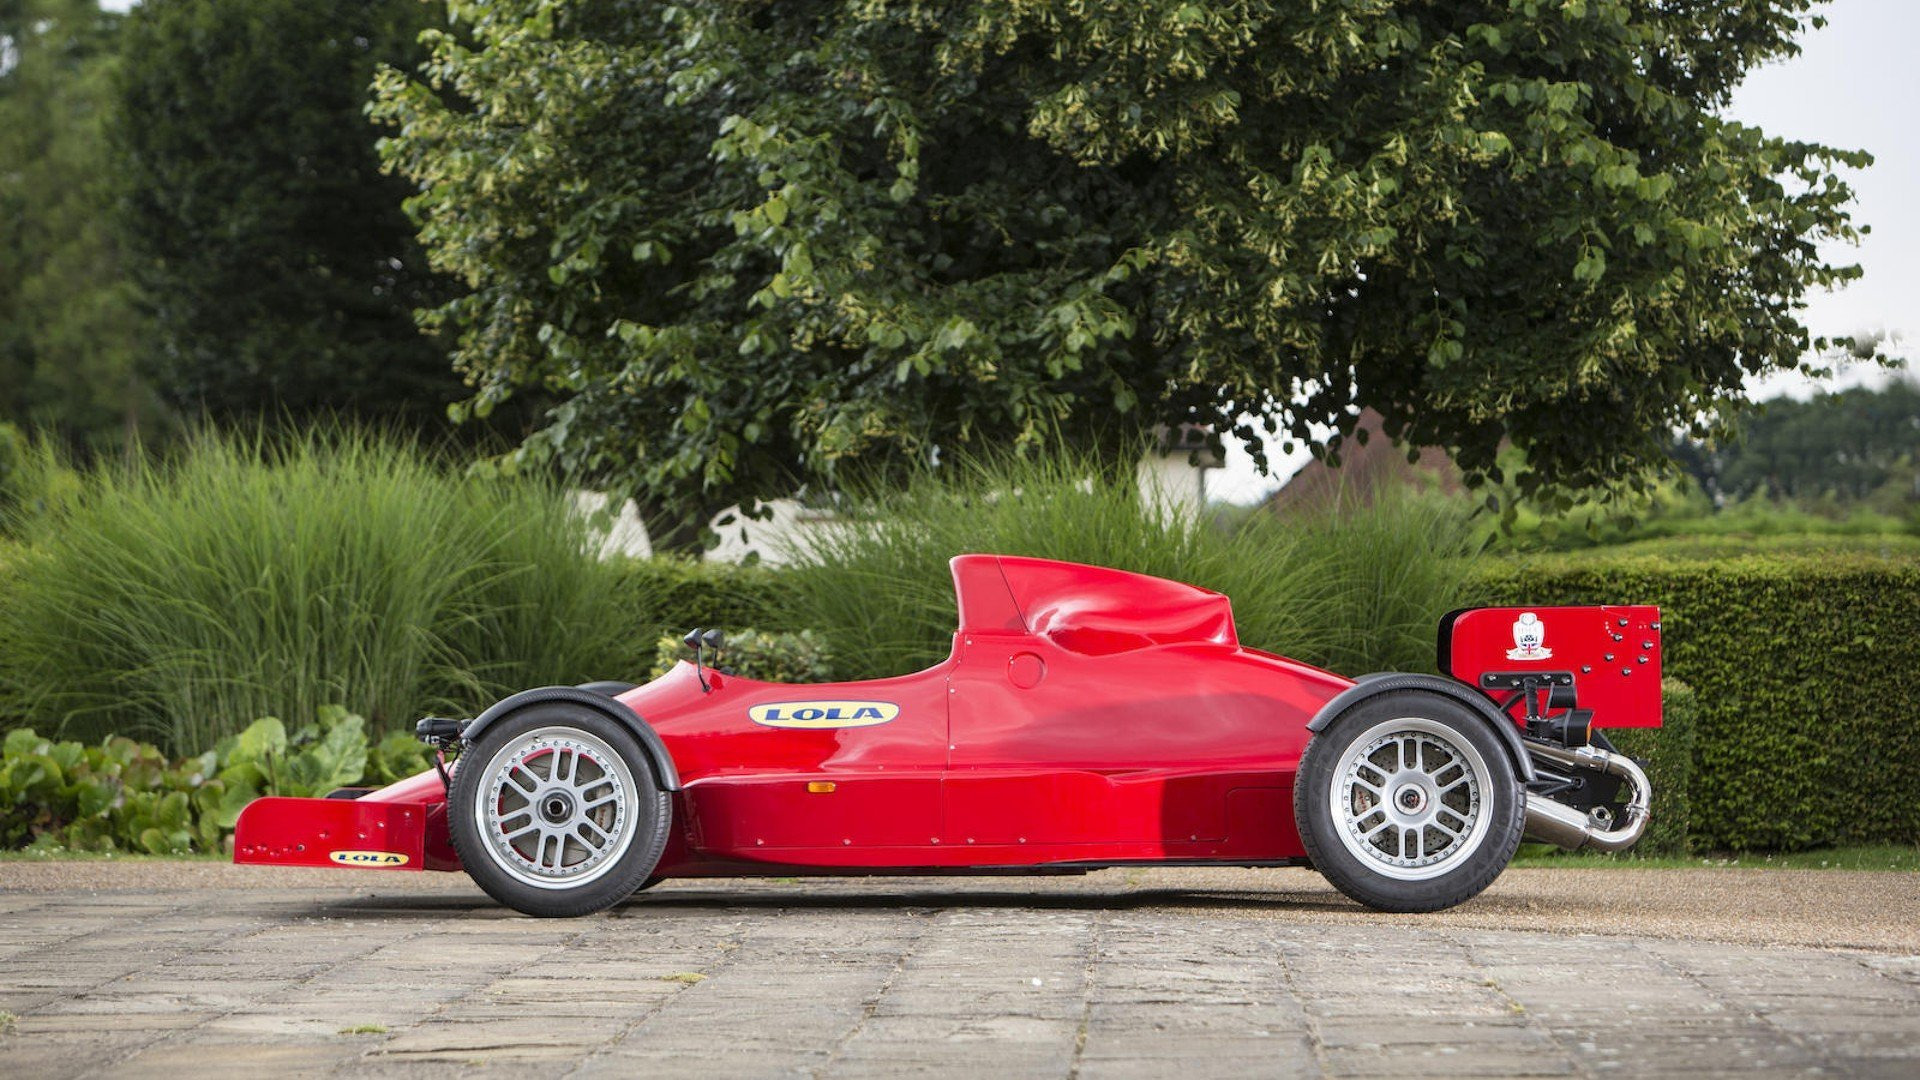 The closest thing to an F1 car for the road is for sale